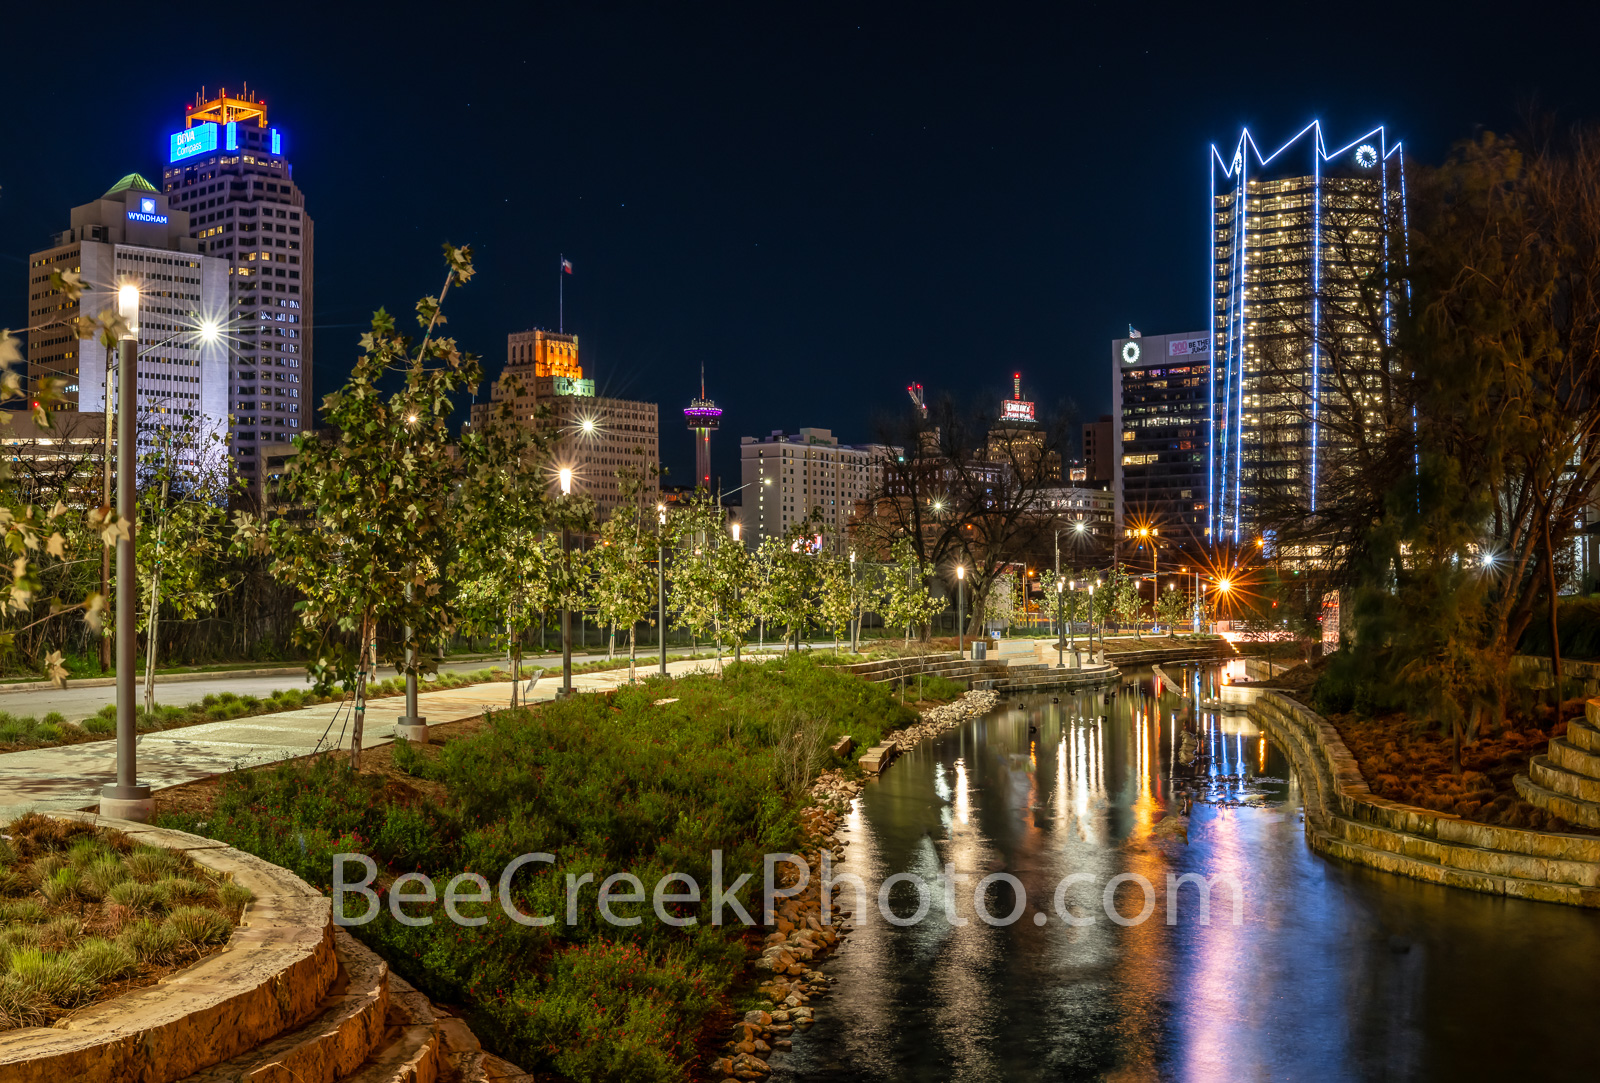 San Antonio skyline, San Antonio skyline pictures, San Antonio skyline images, Frost Tower, San Pedro Creek, reflections, water, night, creek, Frost Tower, Tower of Americas, Drury Hotel, Wydam Hotel,, photo